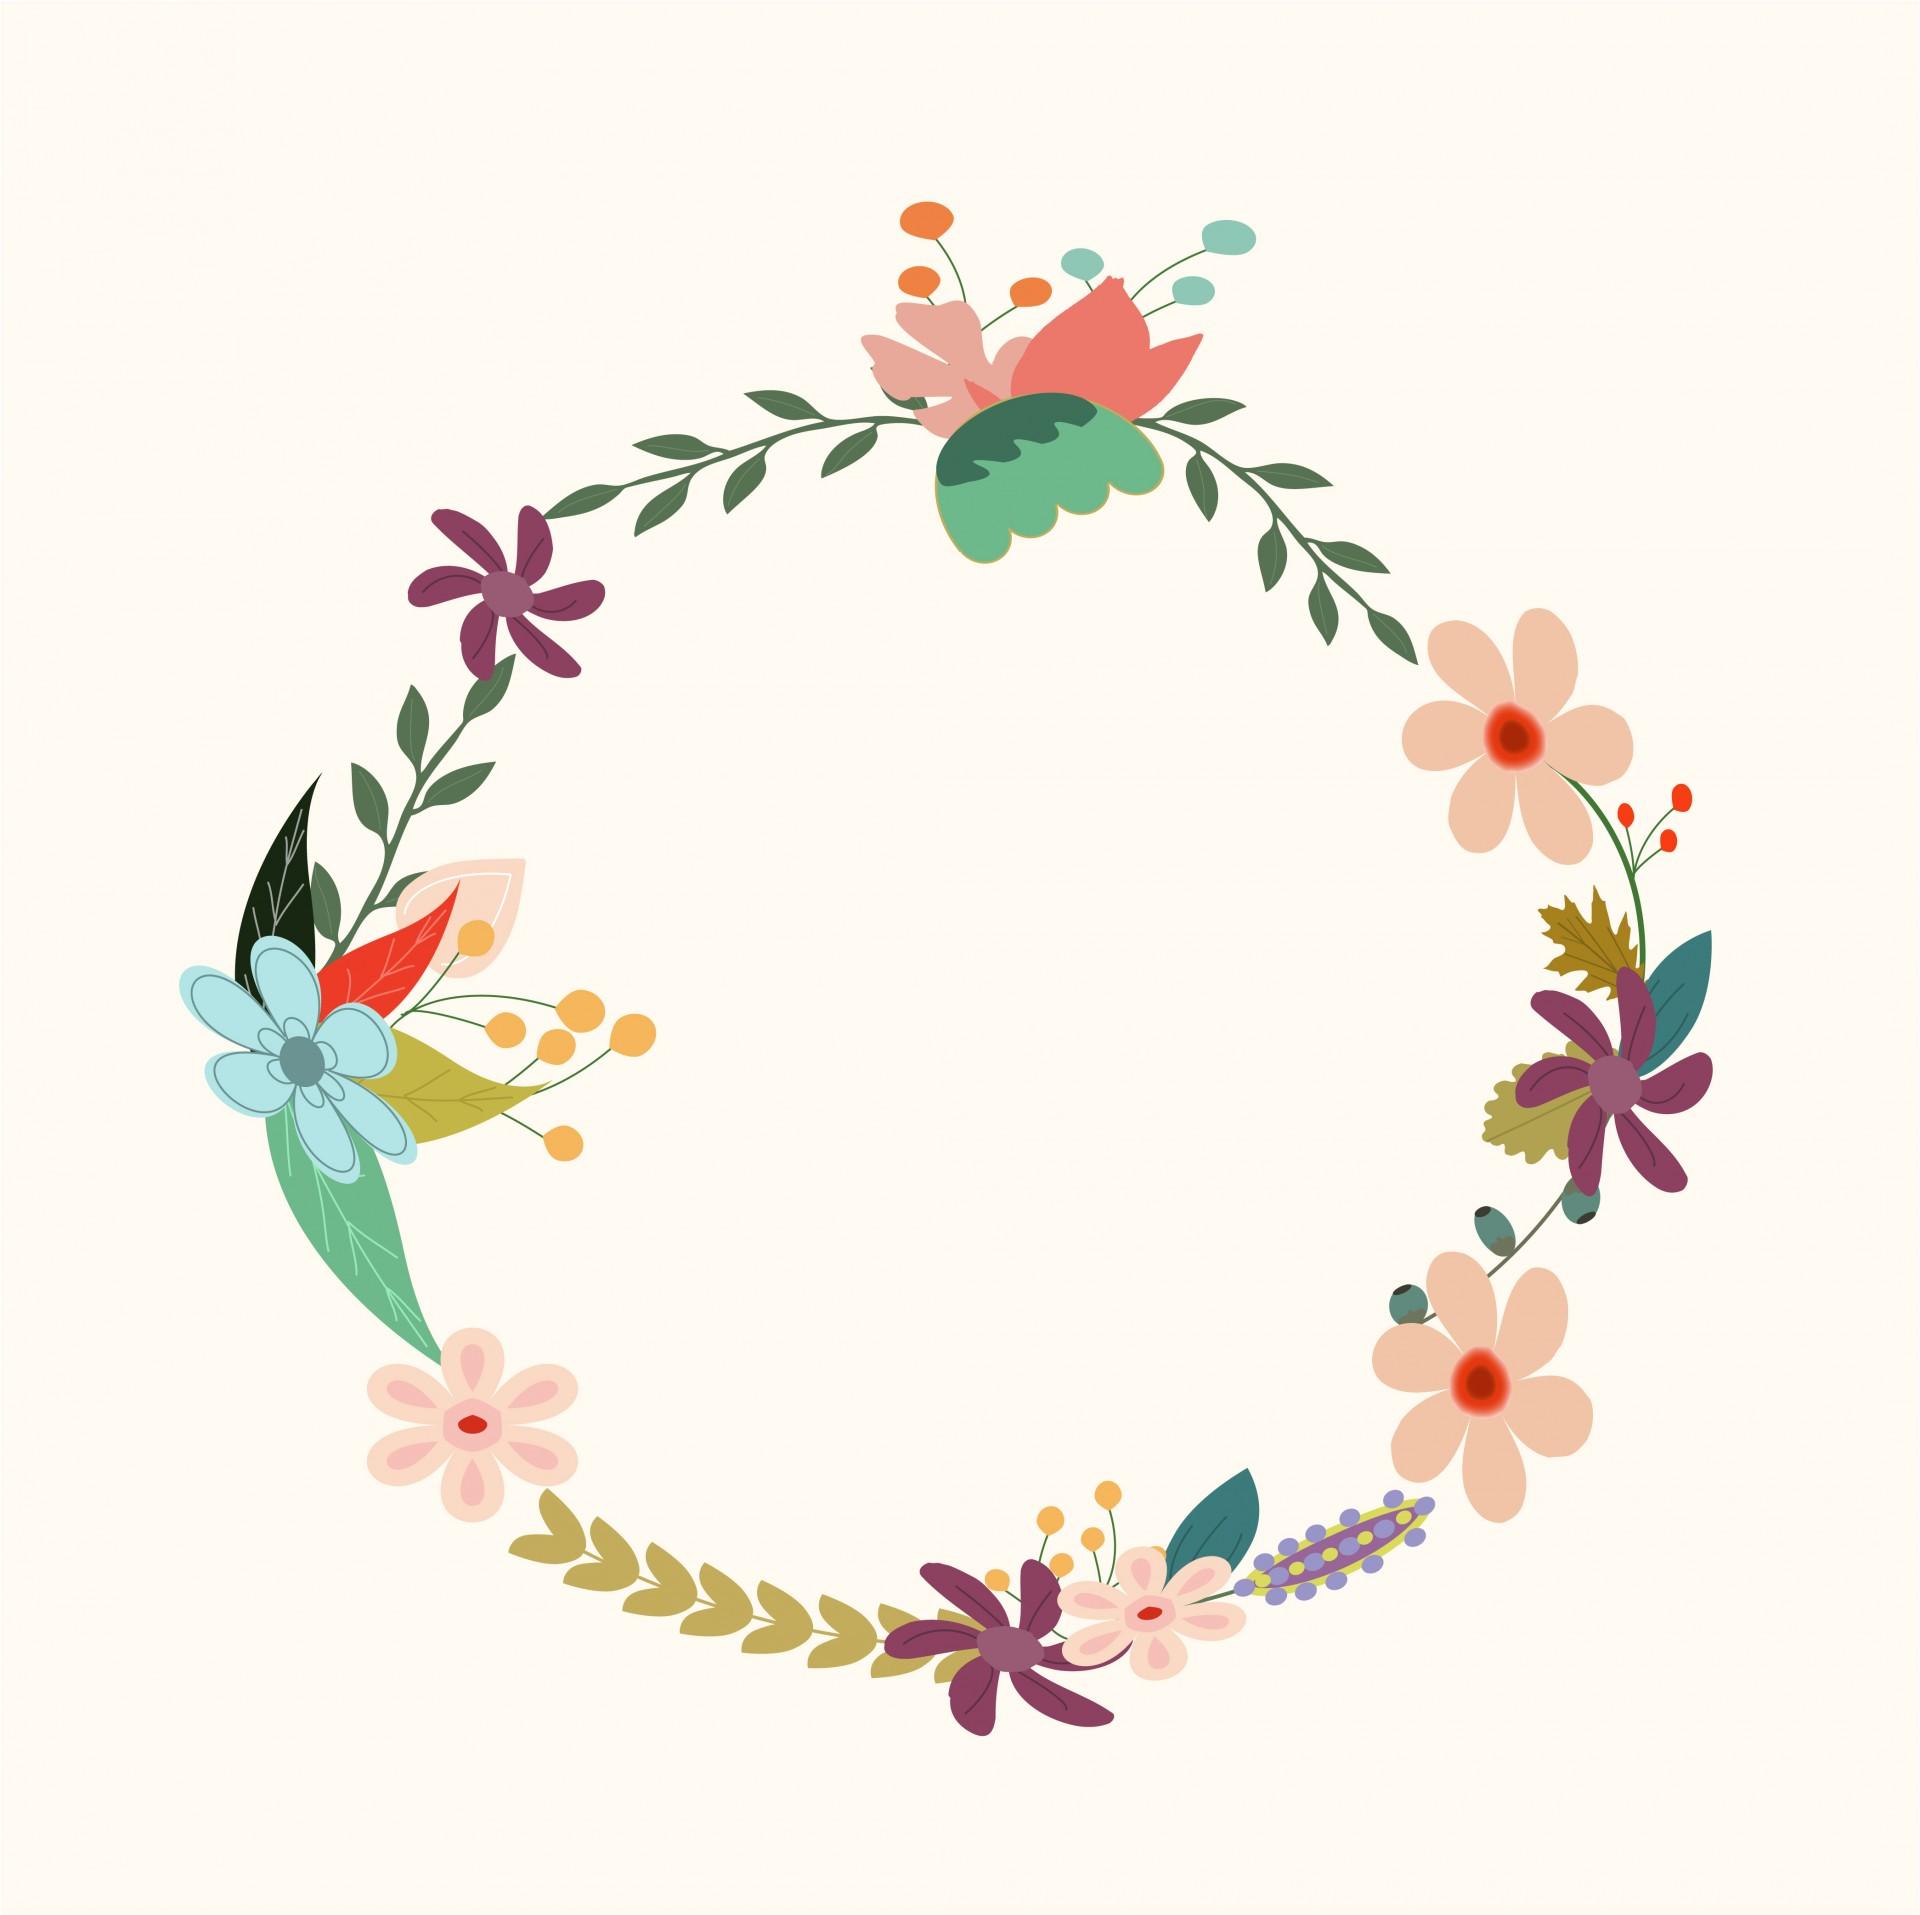 Wreath clipart vintage. Floral free stock photo